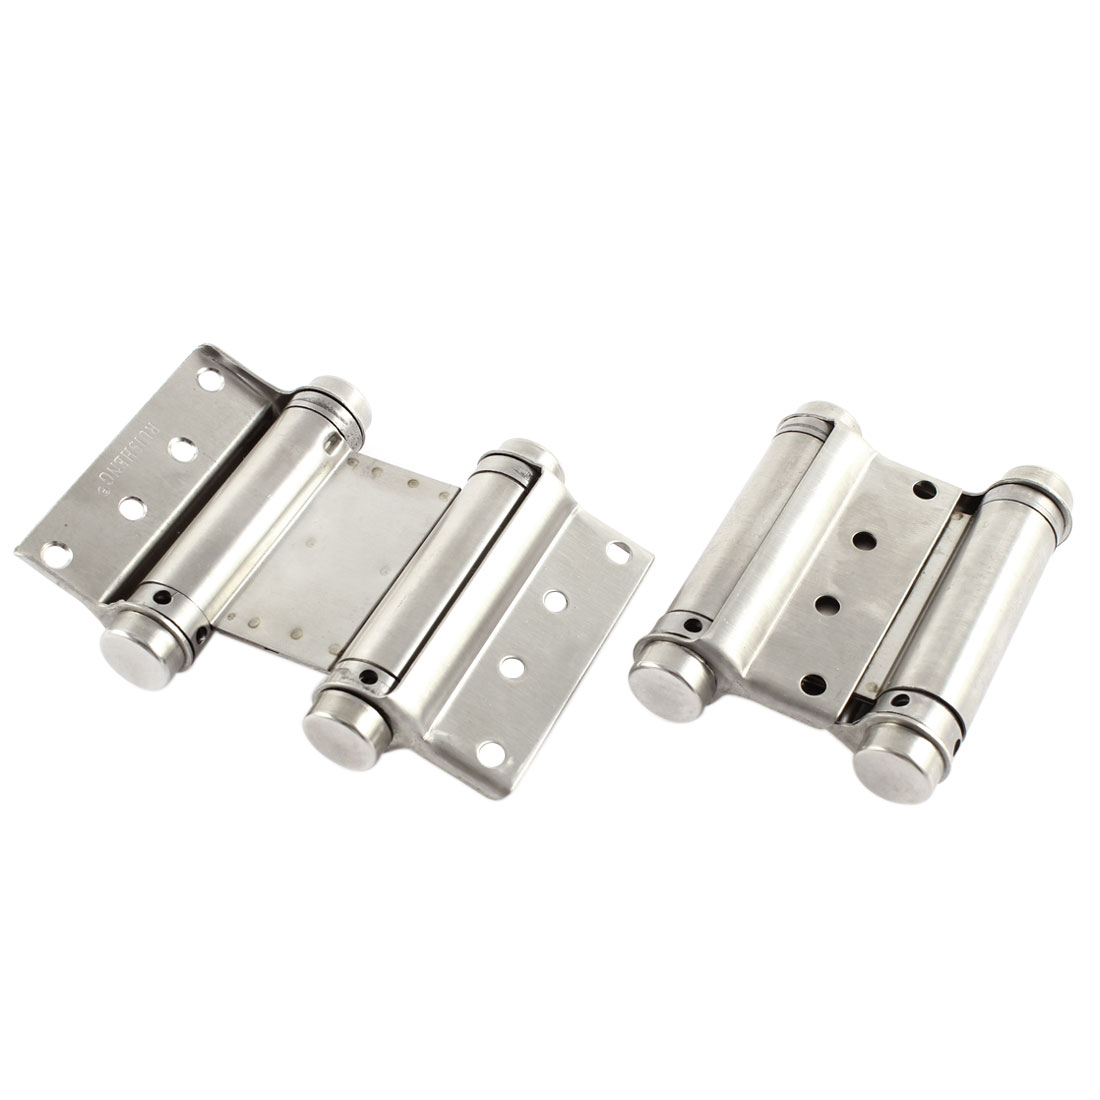 "Self Closing Double Action Concealed Door Spring Hinges Hardware 3"" 2pcs"